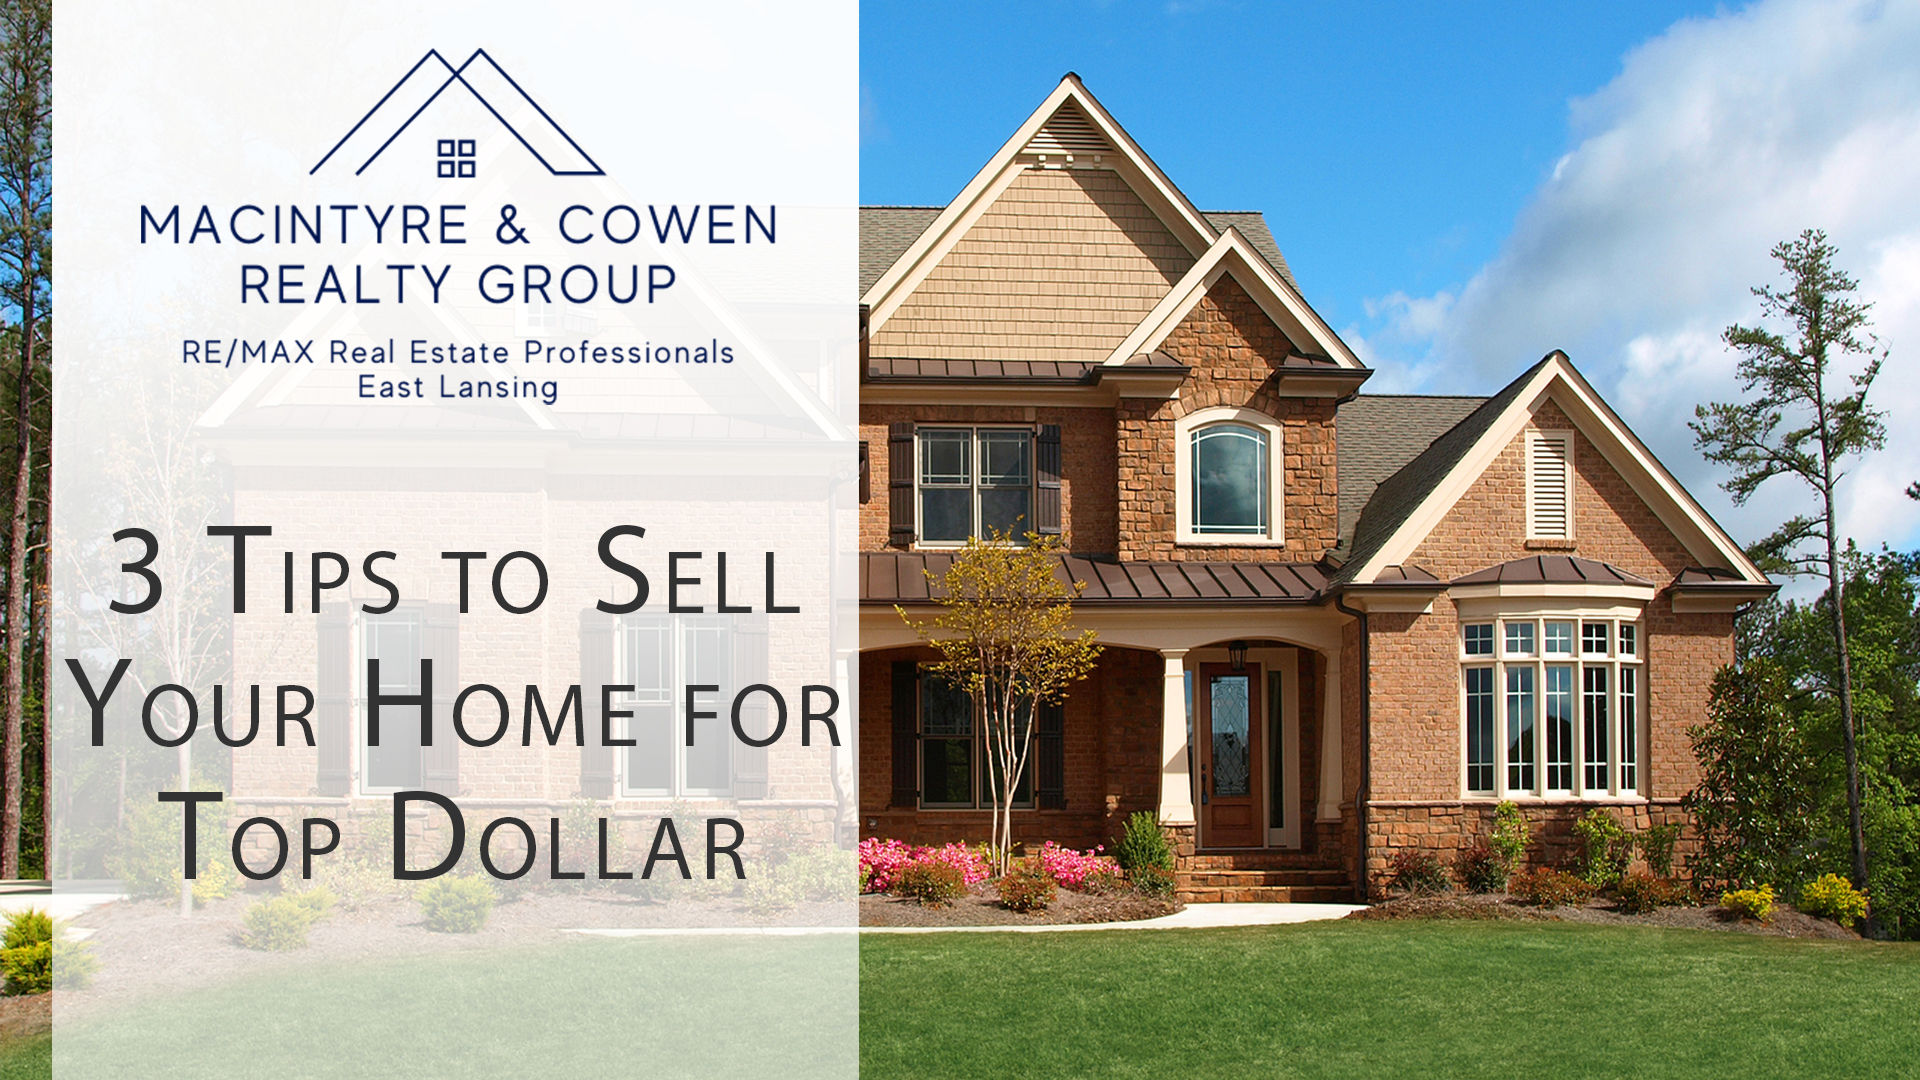 My Top Three Tips for Home Sellers